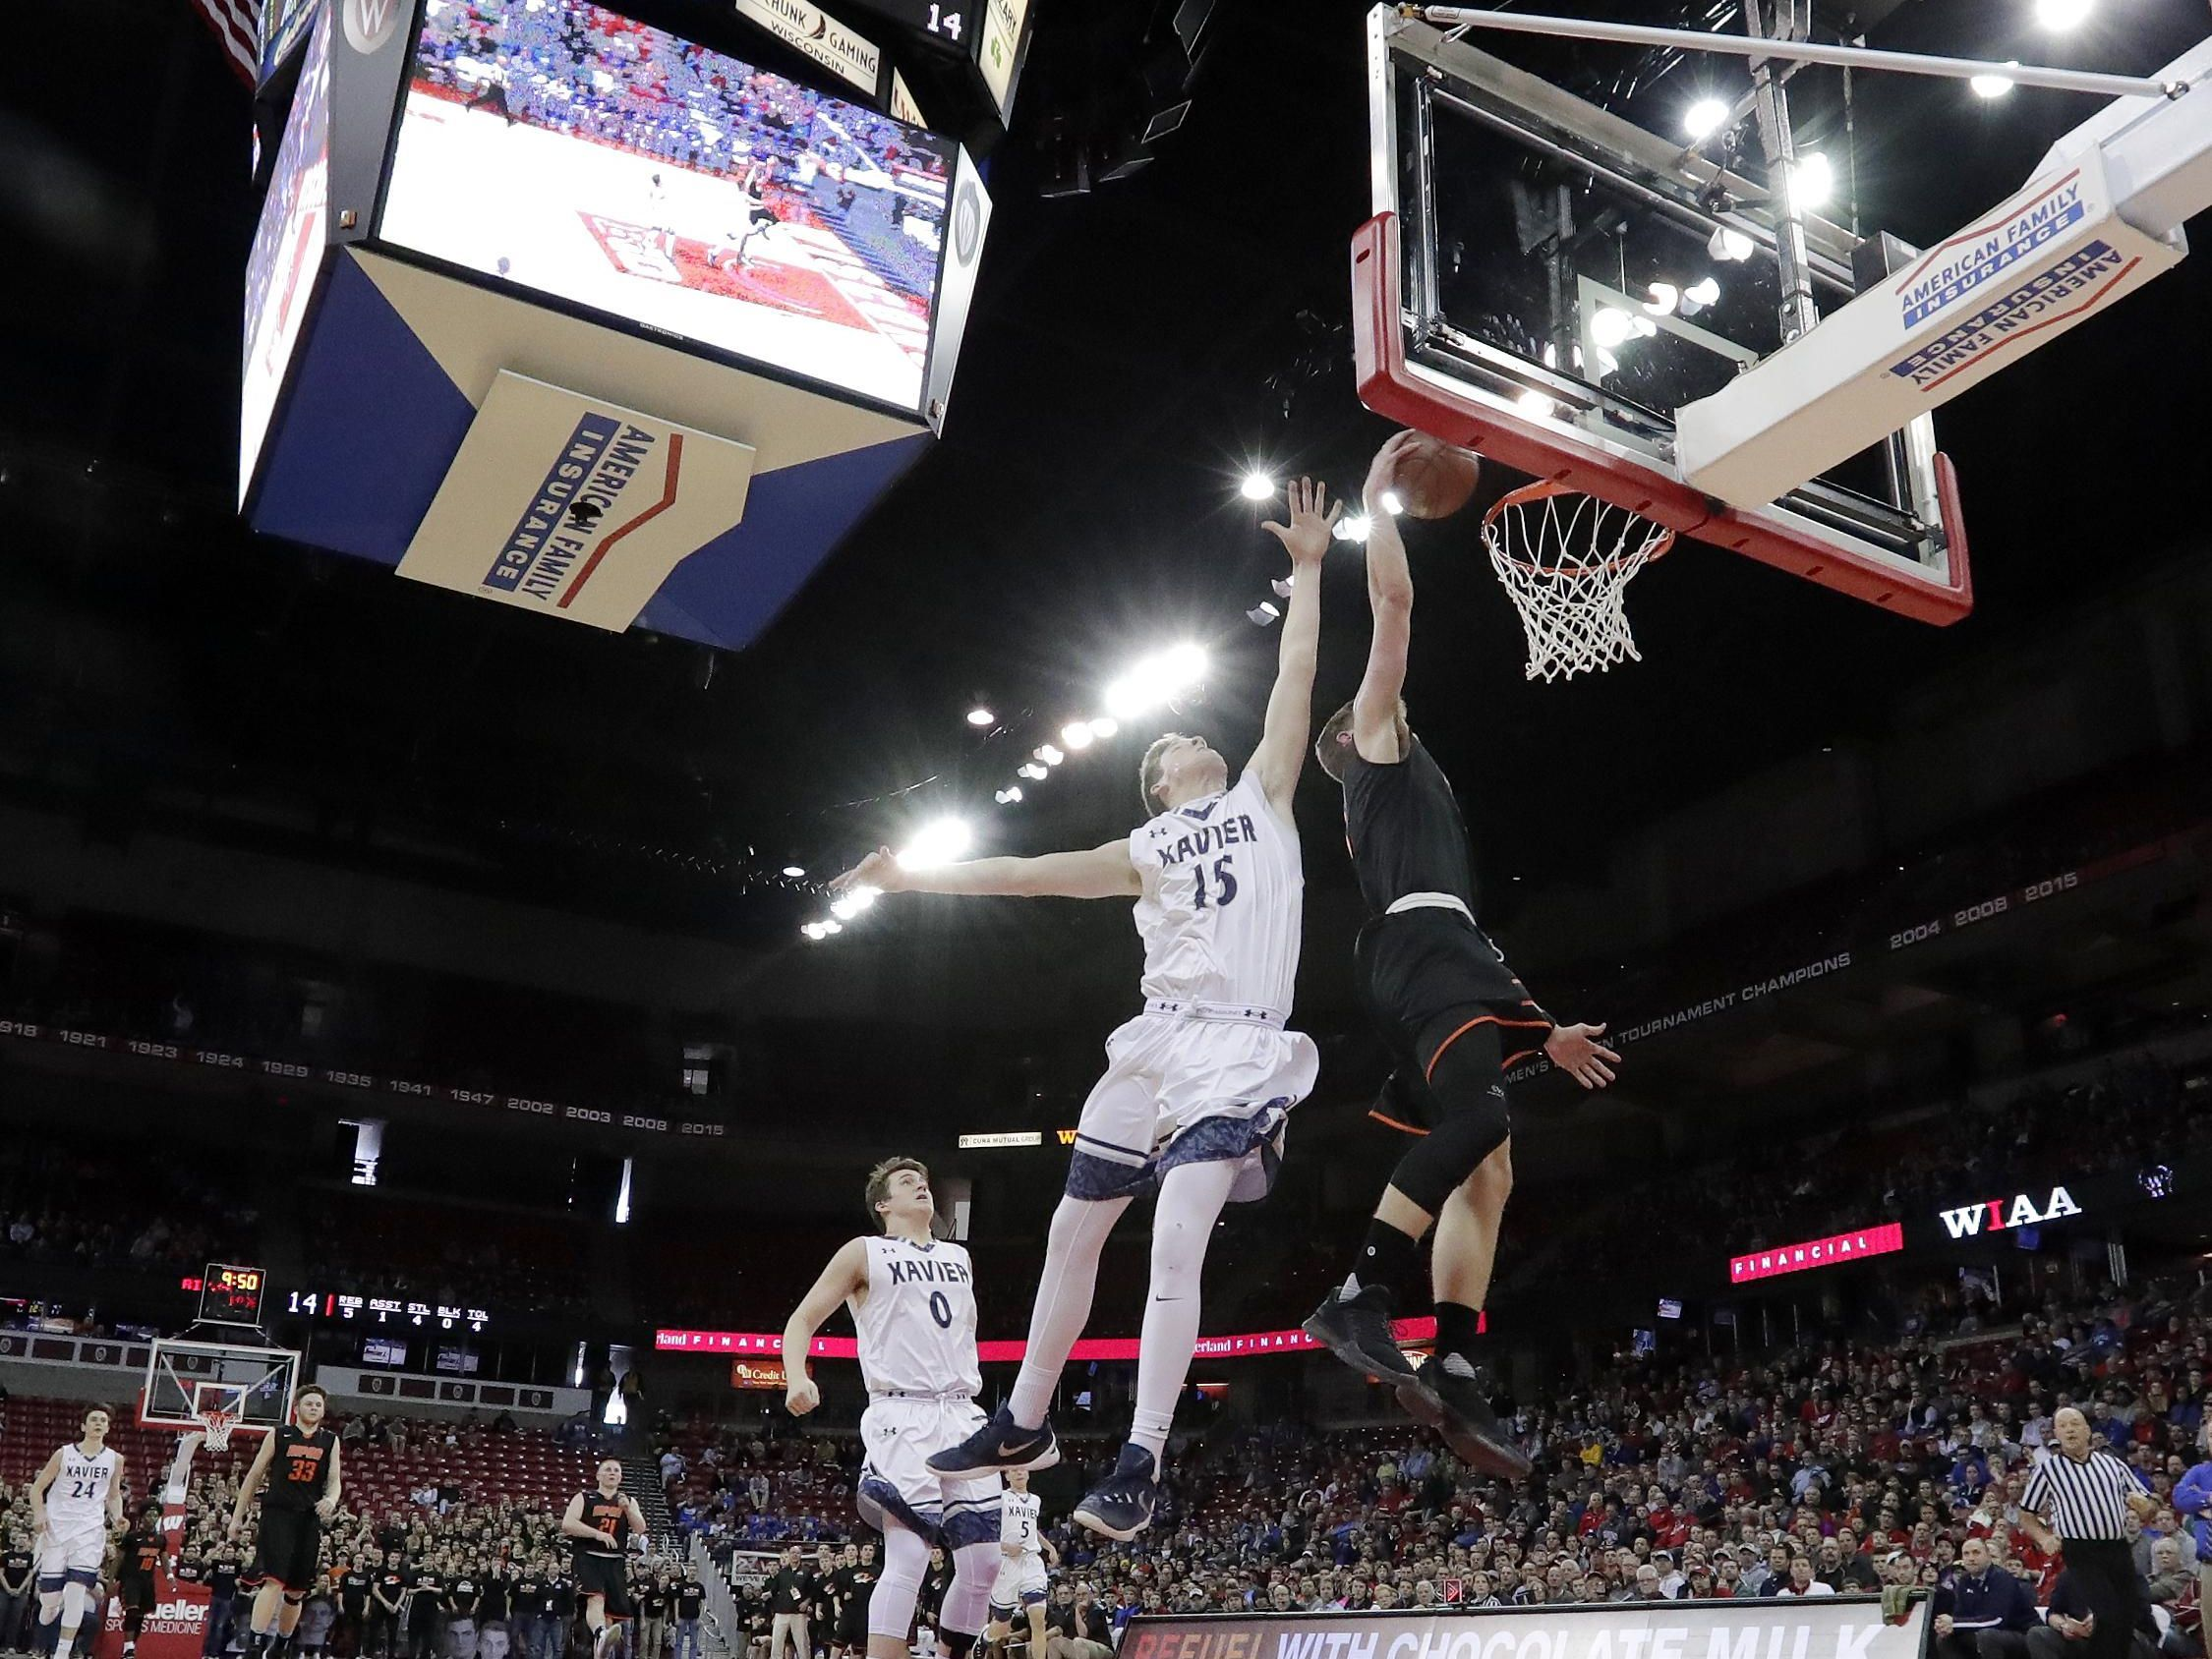 Ripon's Bennett Vander Plas (1) dunks over Xavier's Nate DeYoung (15) in a WIAA Division 3 semifinal at the boys basketball state tournament at the Kohl Center on Thursday.